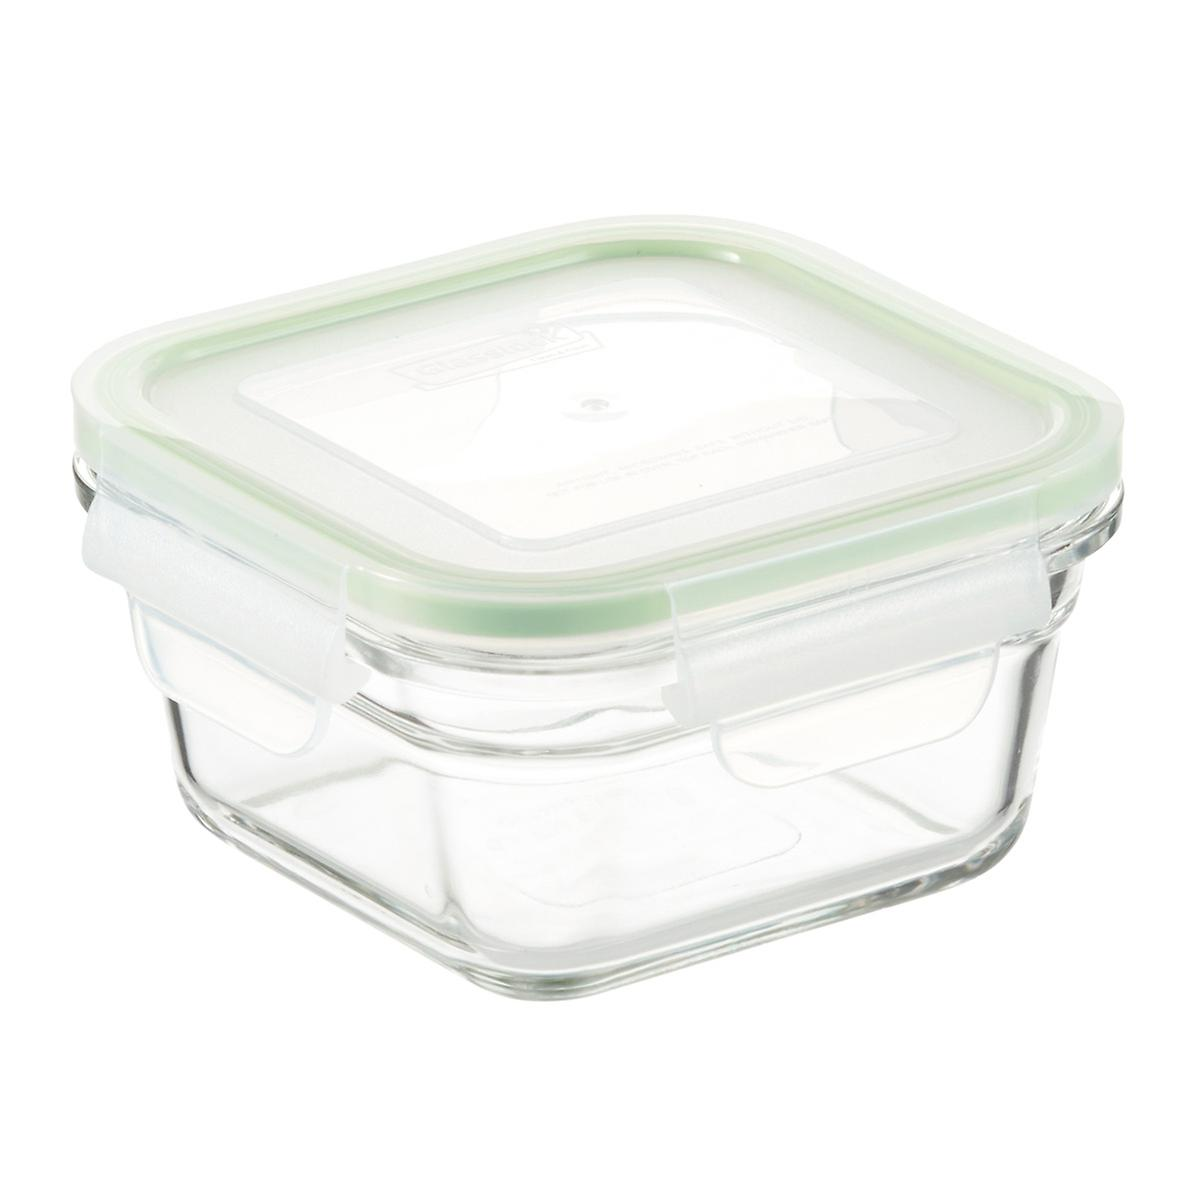 glasslock square food containers with lids the container. Black Bedroom Furniture Sets. Home Design Ideas